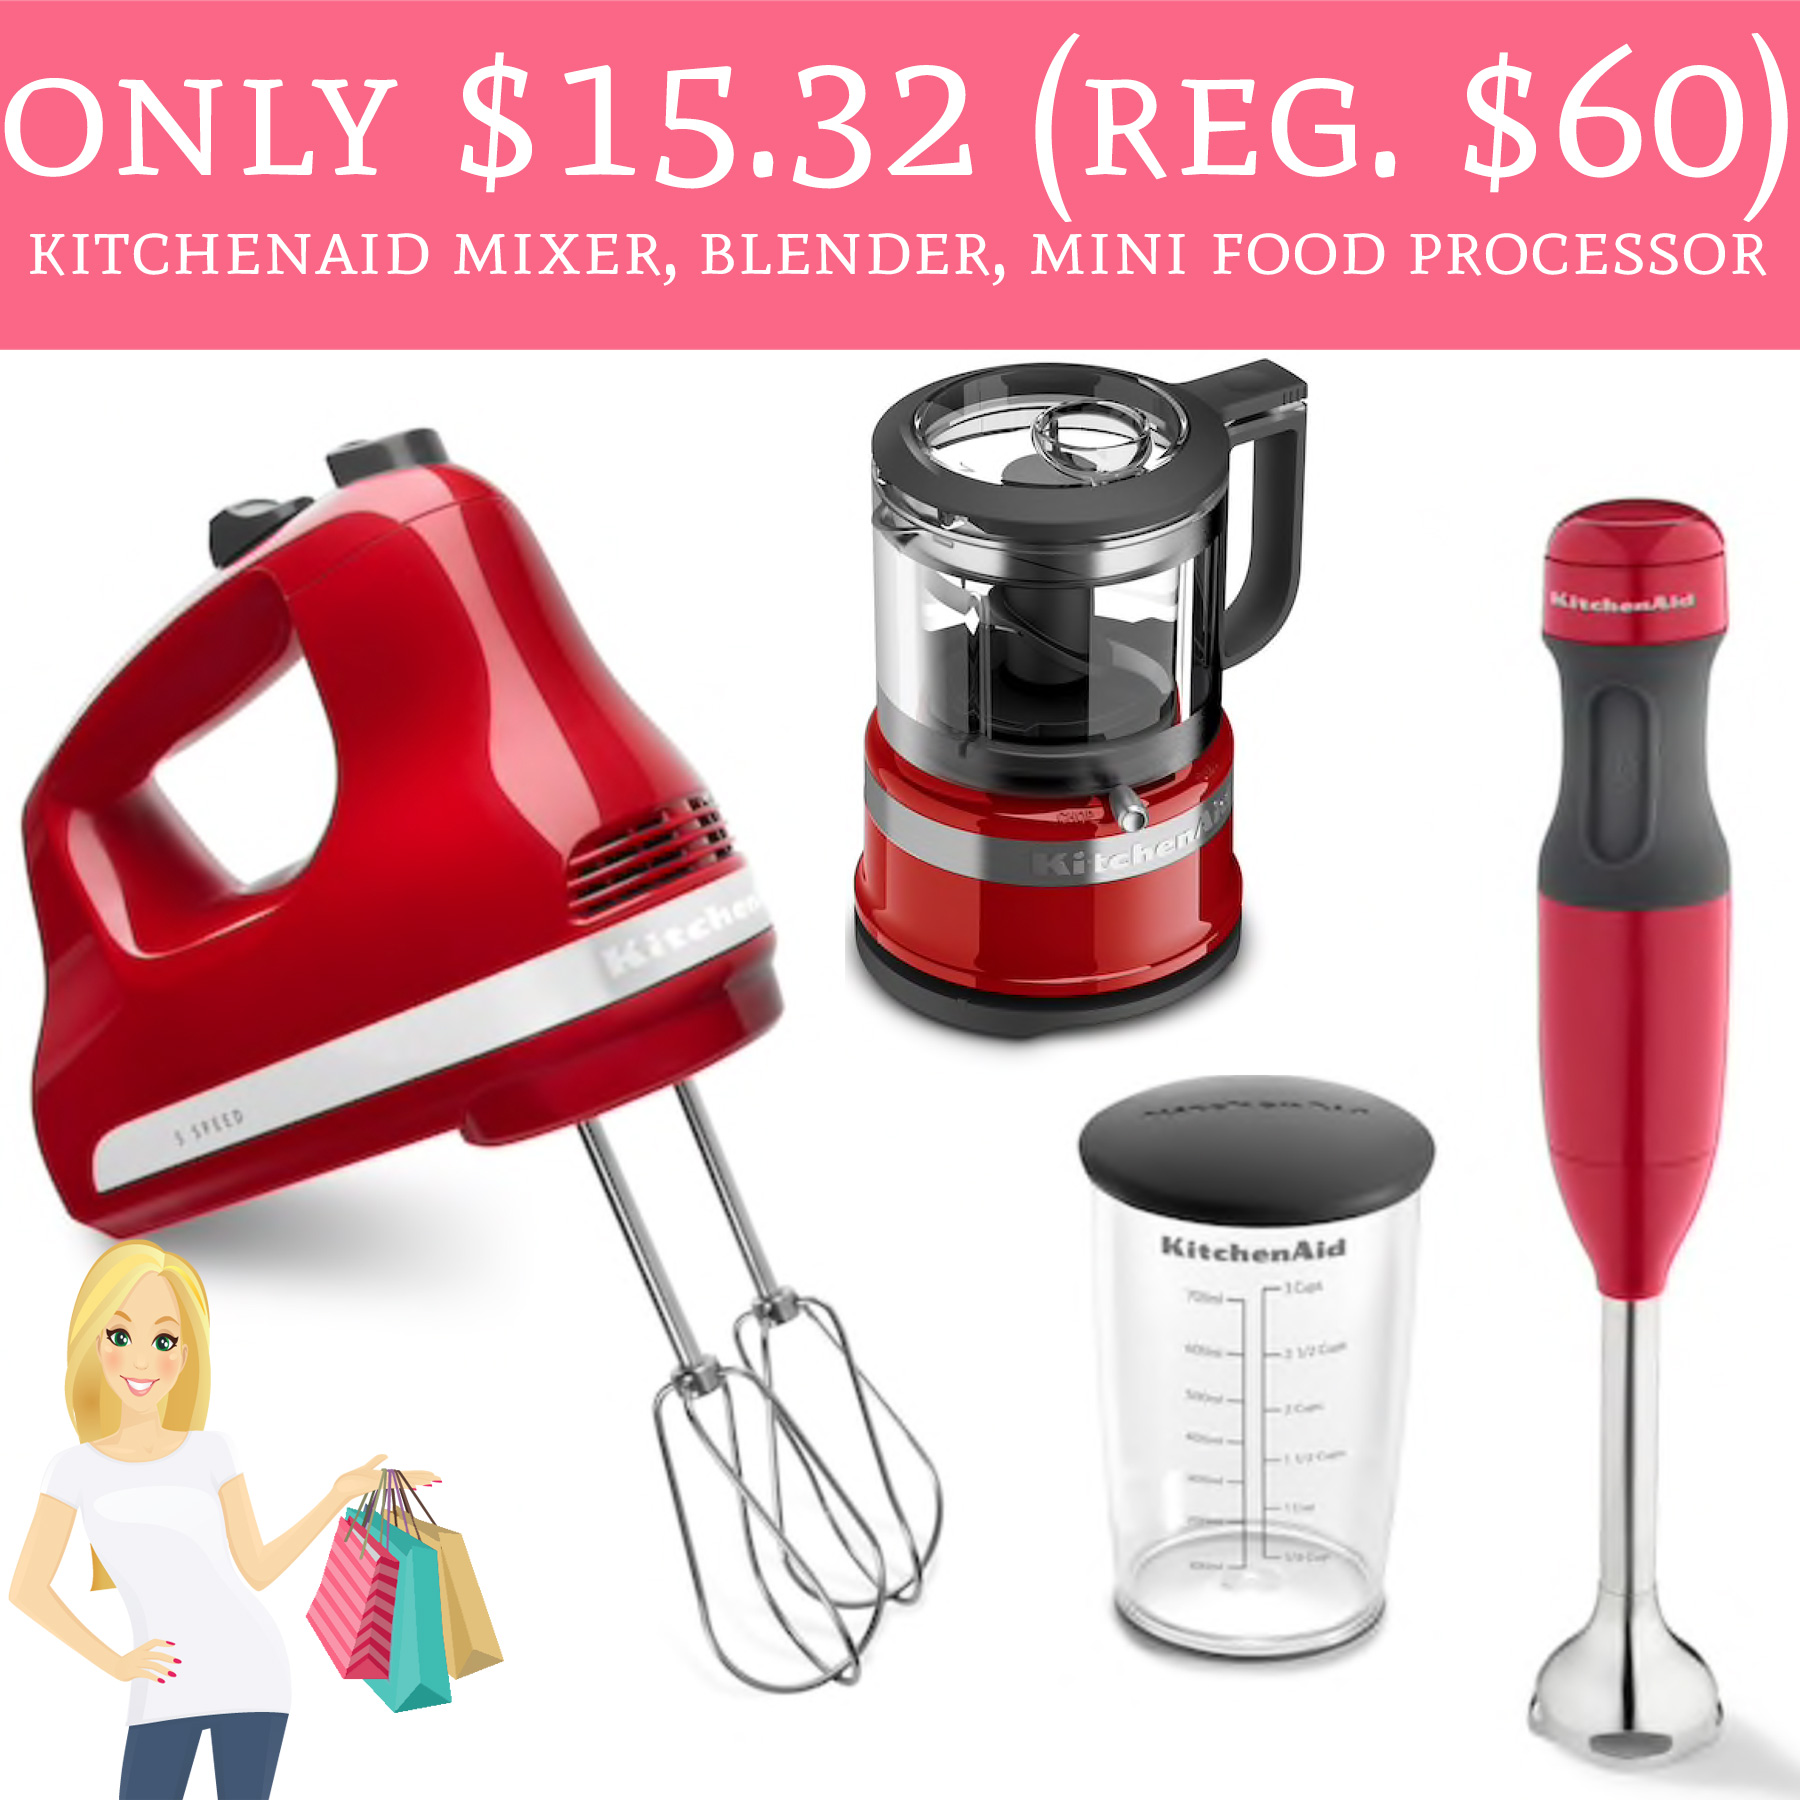 youll want to run for this deal - Kitchen Aid Hand Mixer